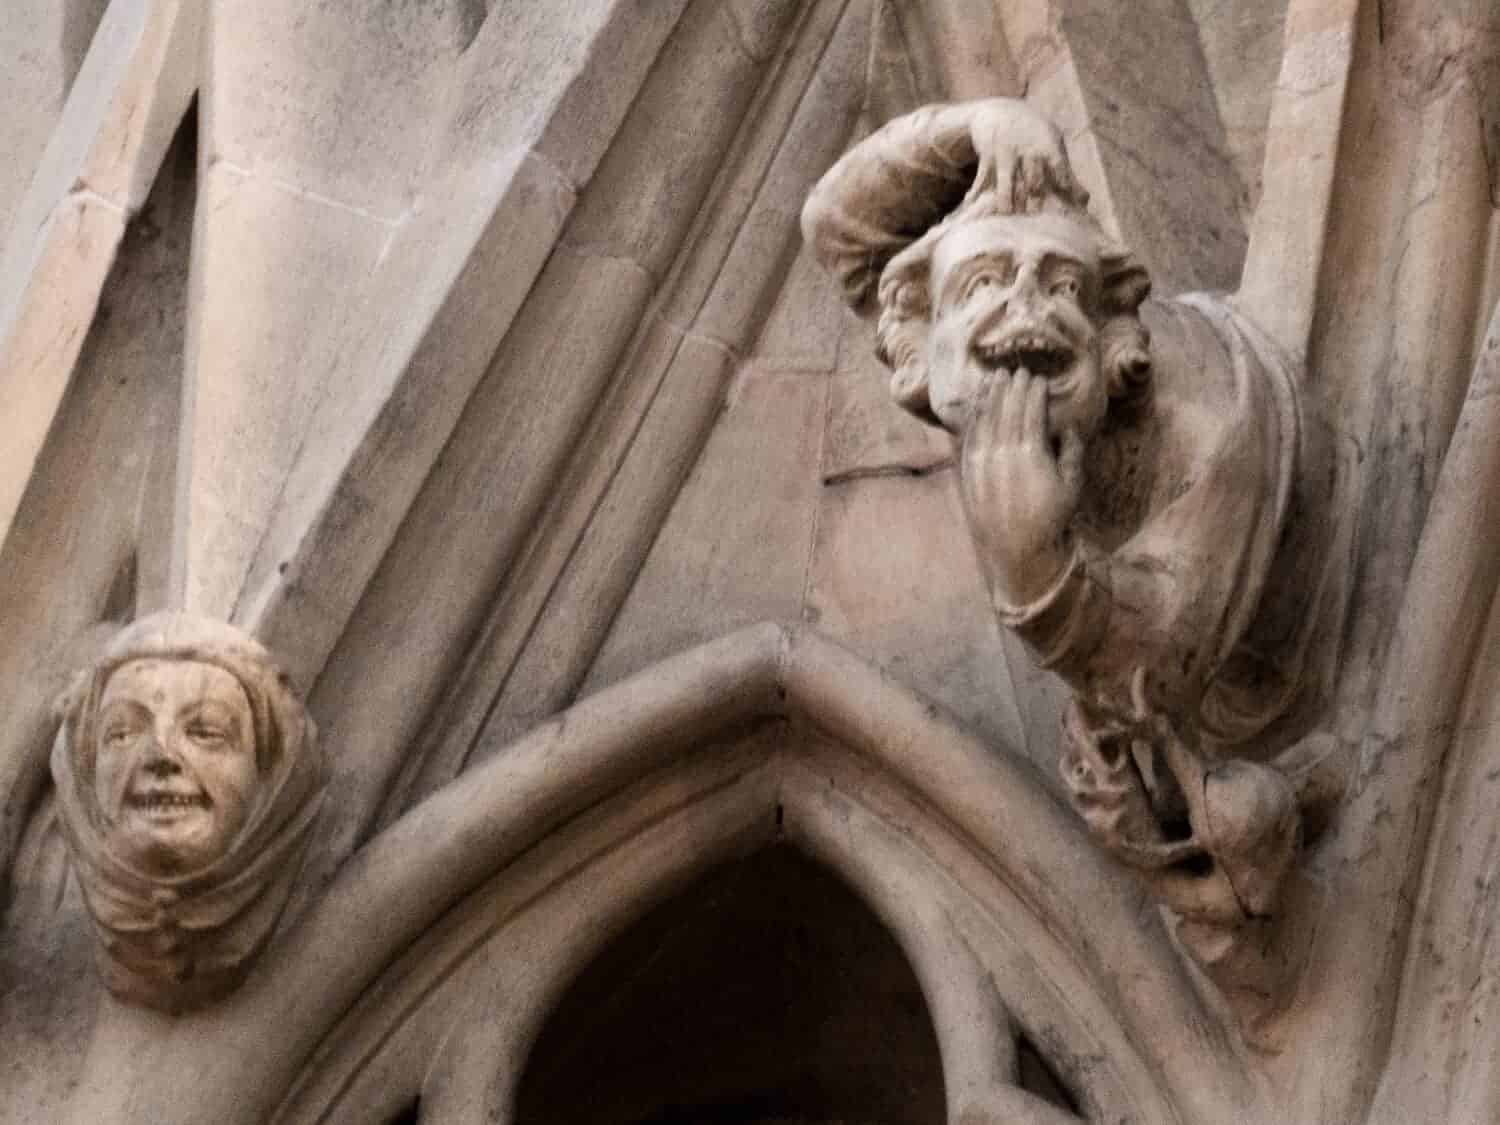 Visiting York Minster Chapter House Heads